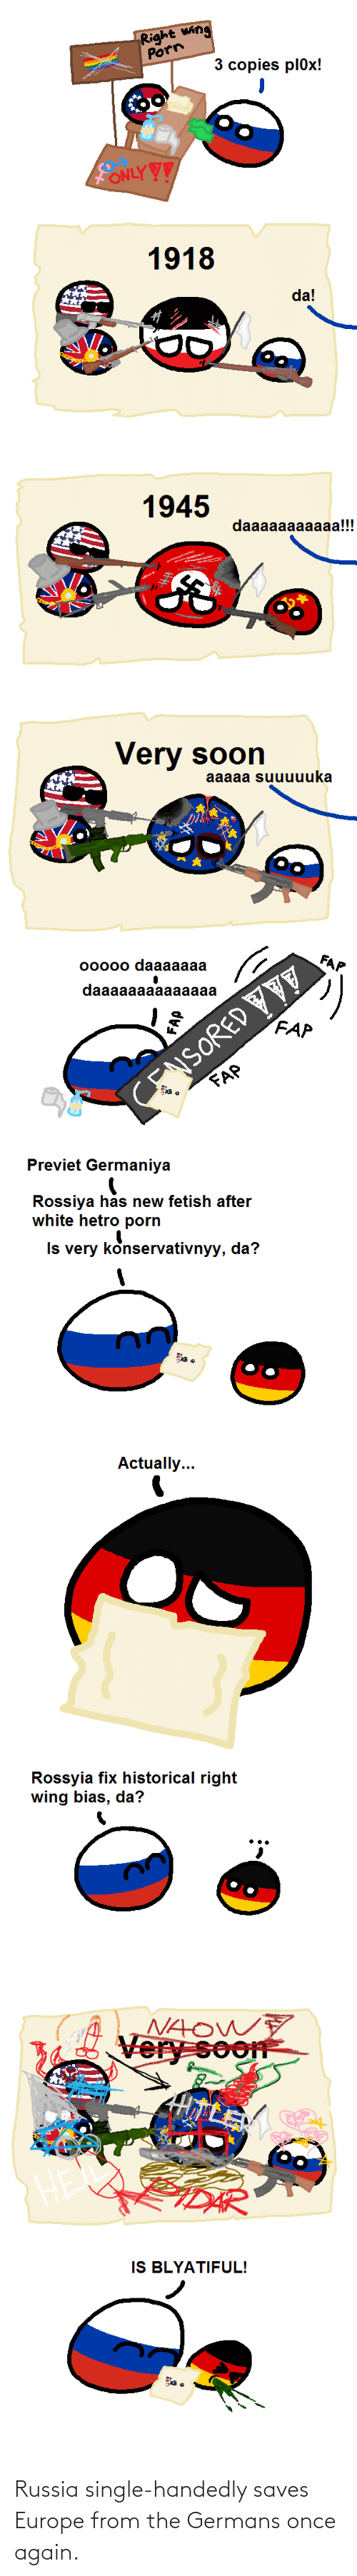 germans: Russia single-handedly saves Europe from the Germans once again.